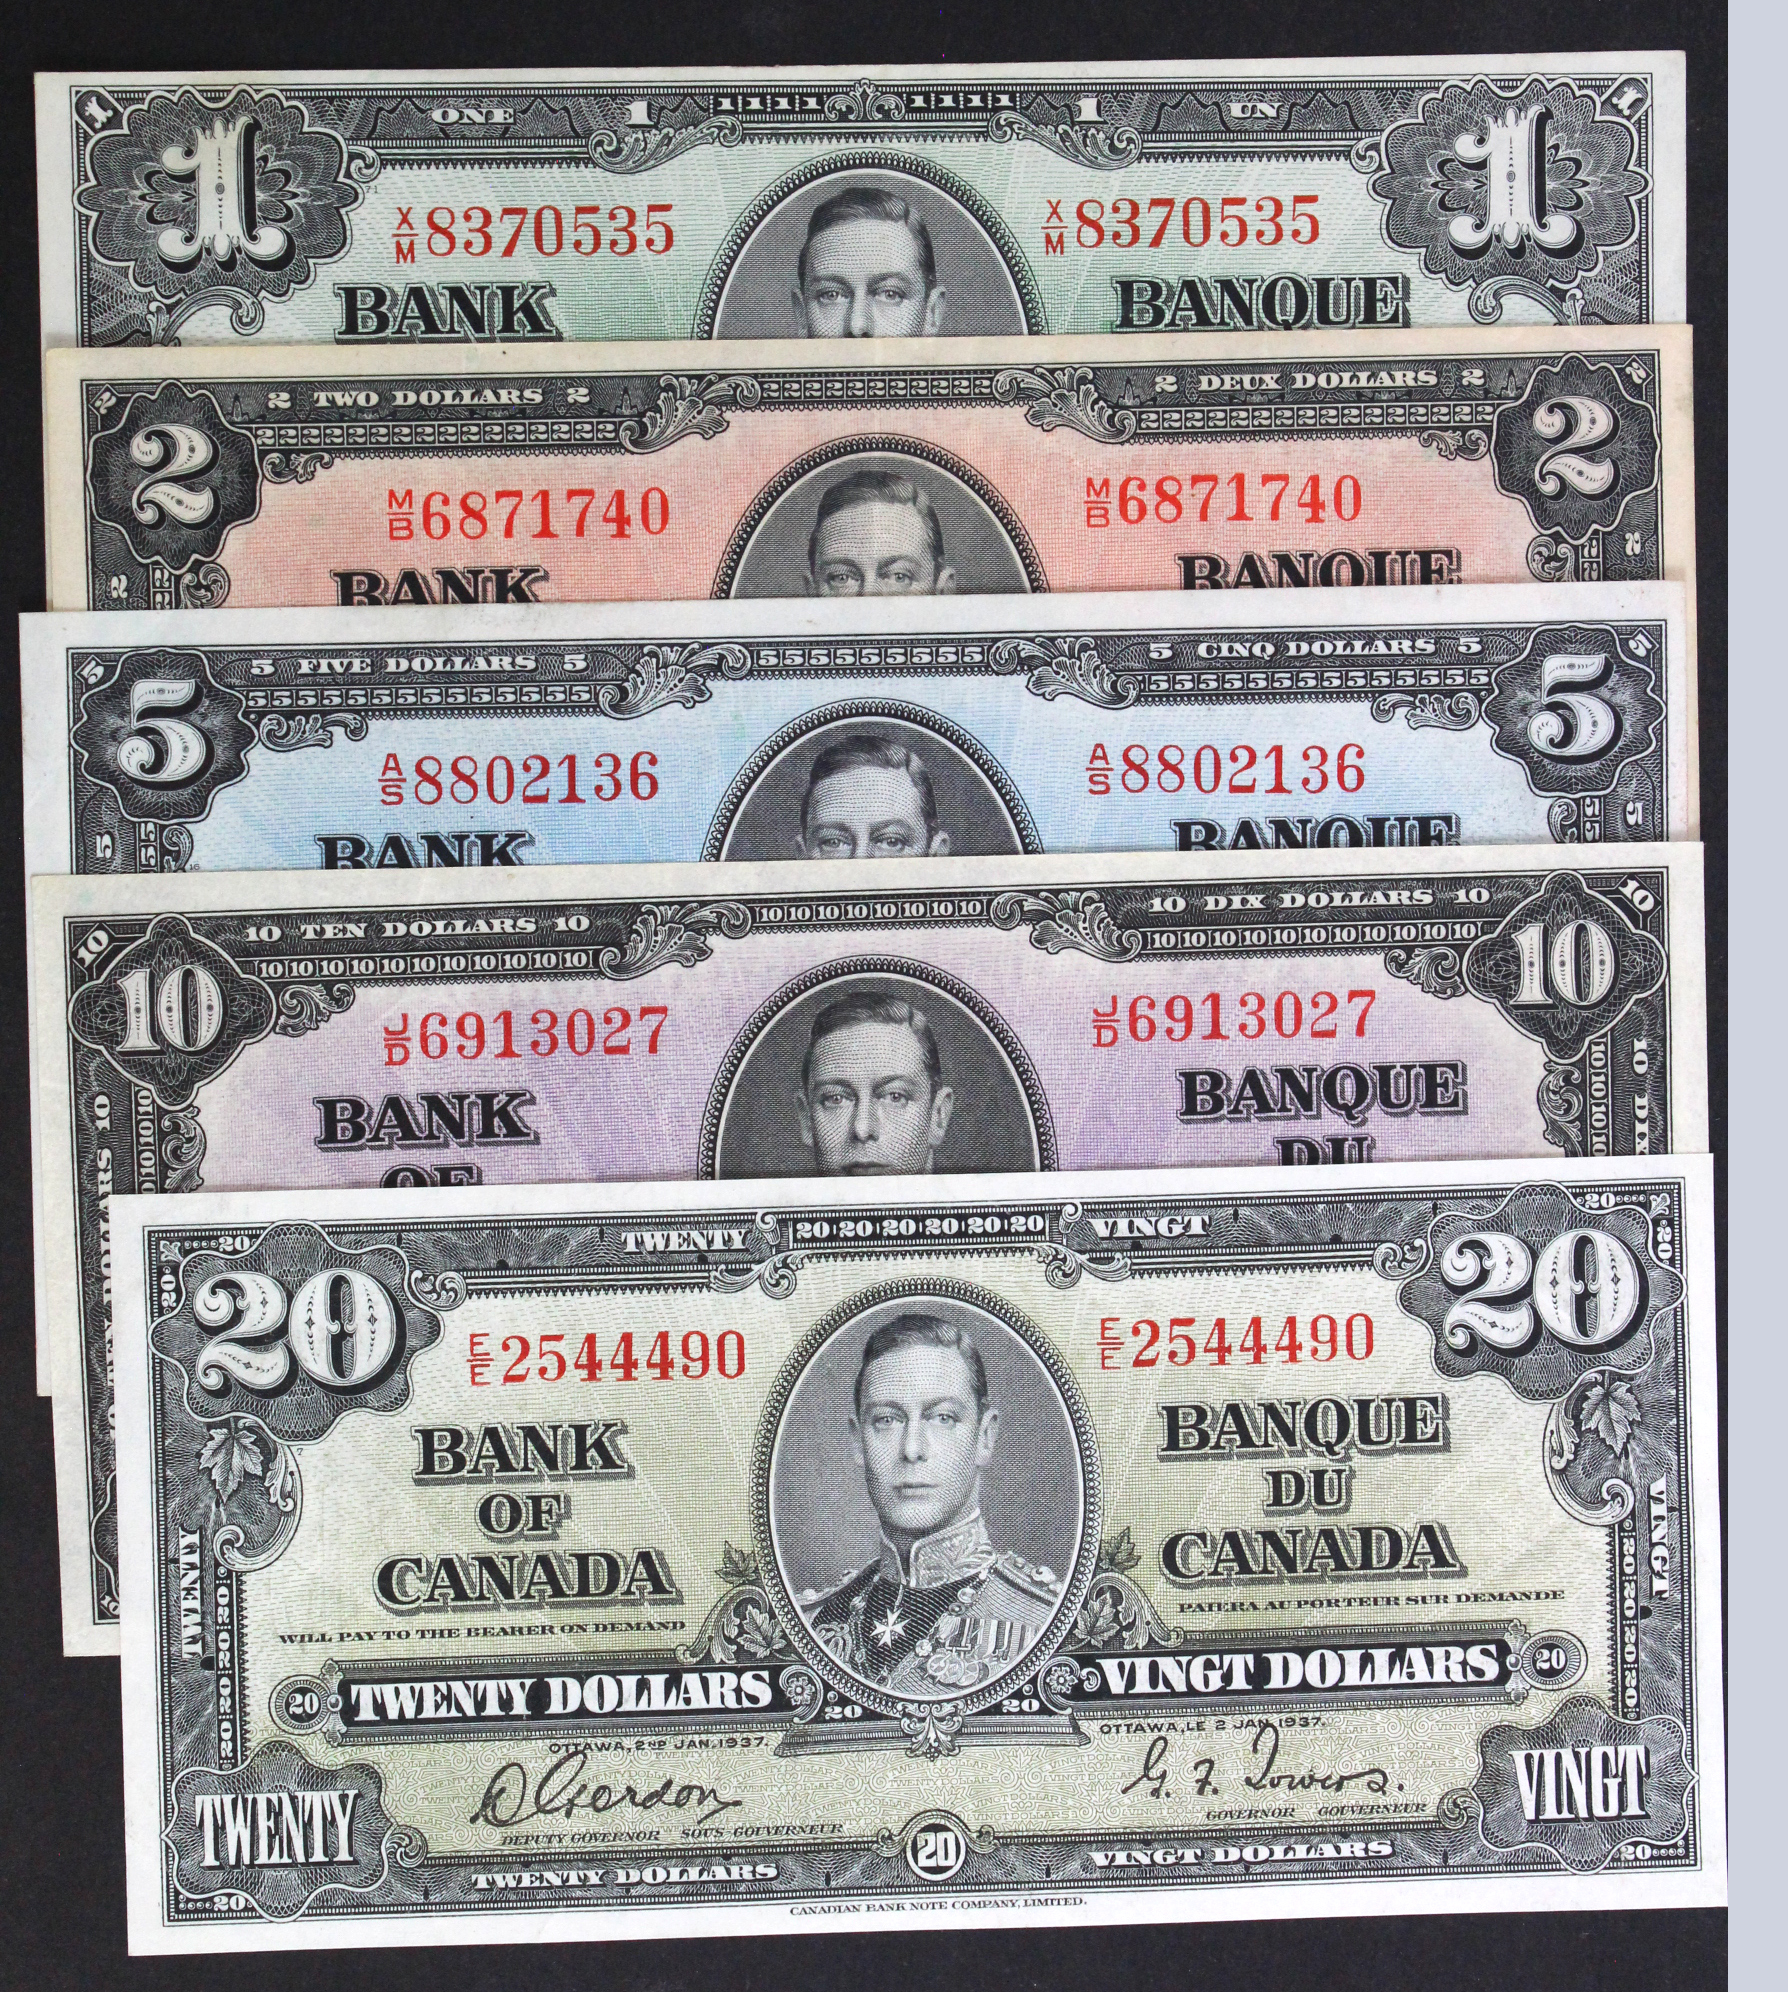 Canada (5), a group of King George VI notes, 20 Dollars, 10 Dollars, 5 Dollars, 2 Dollars and 1